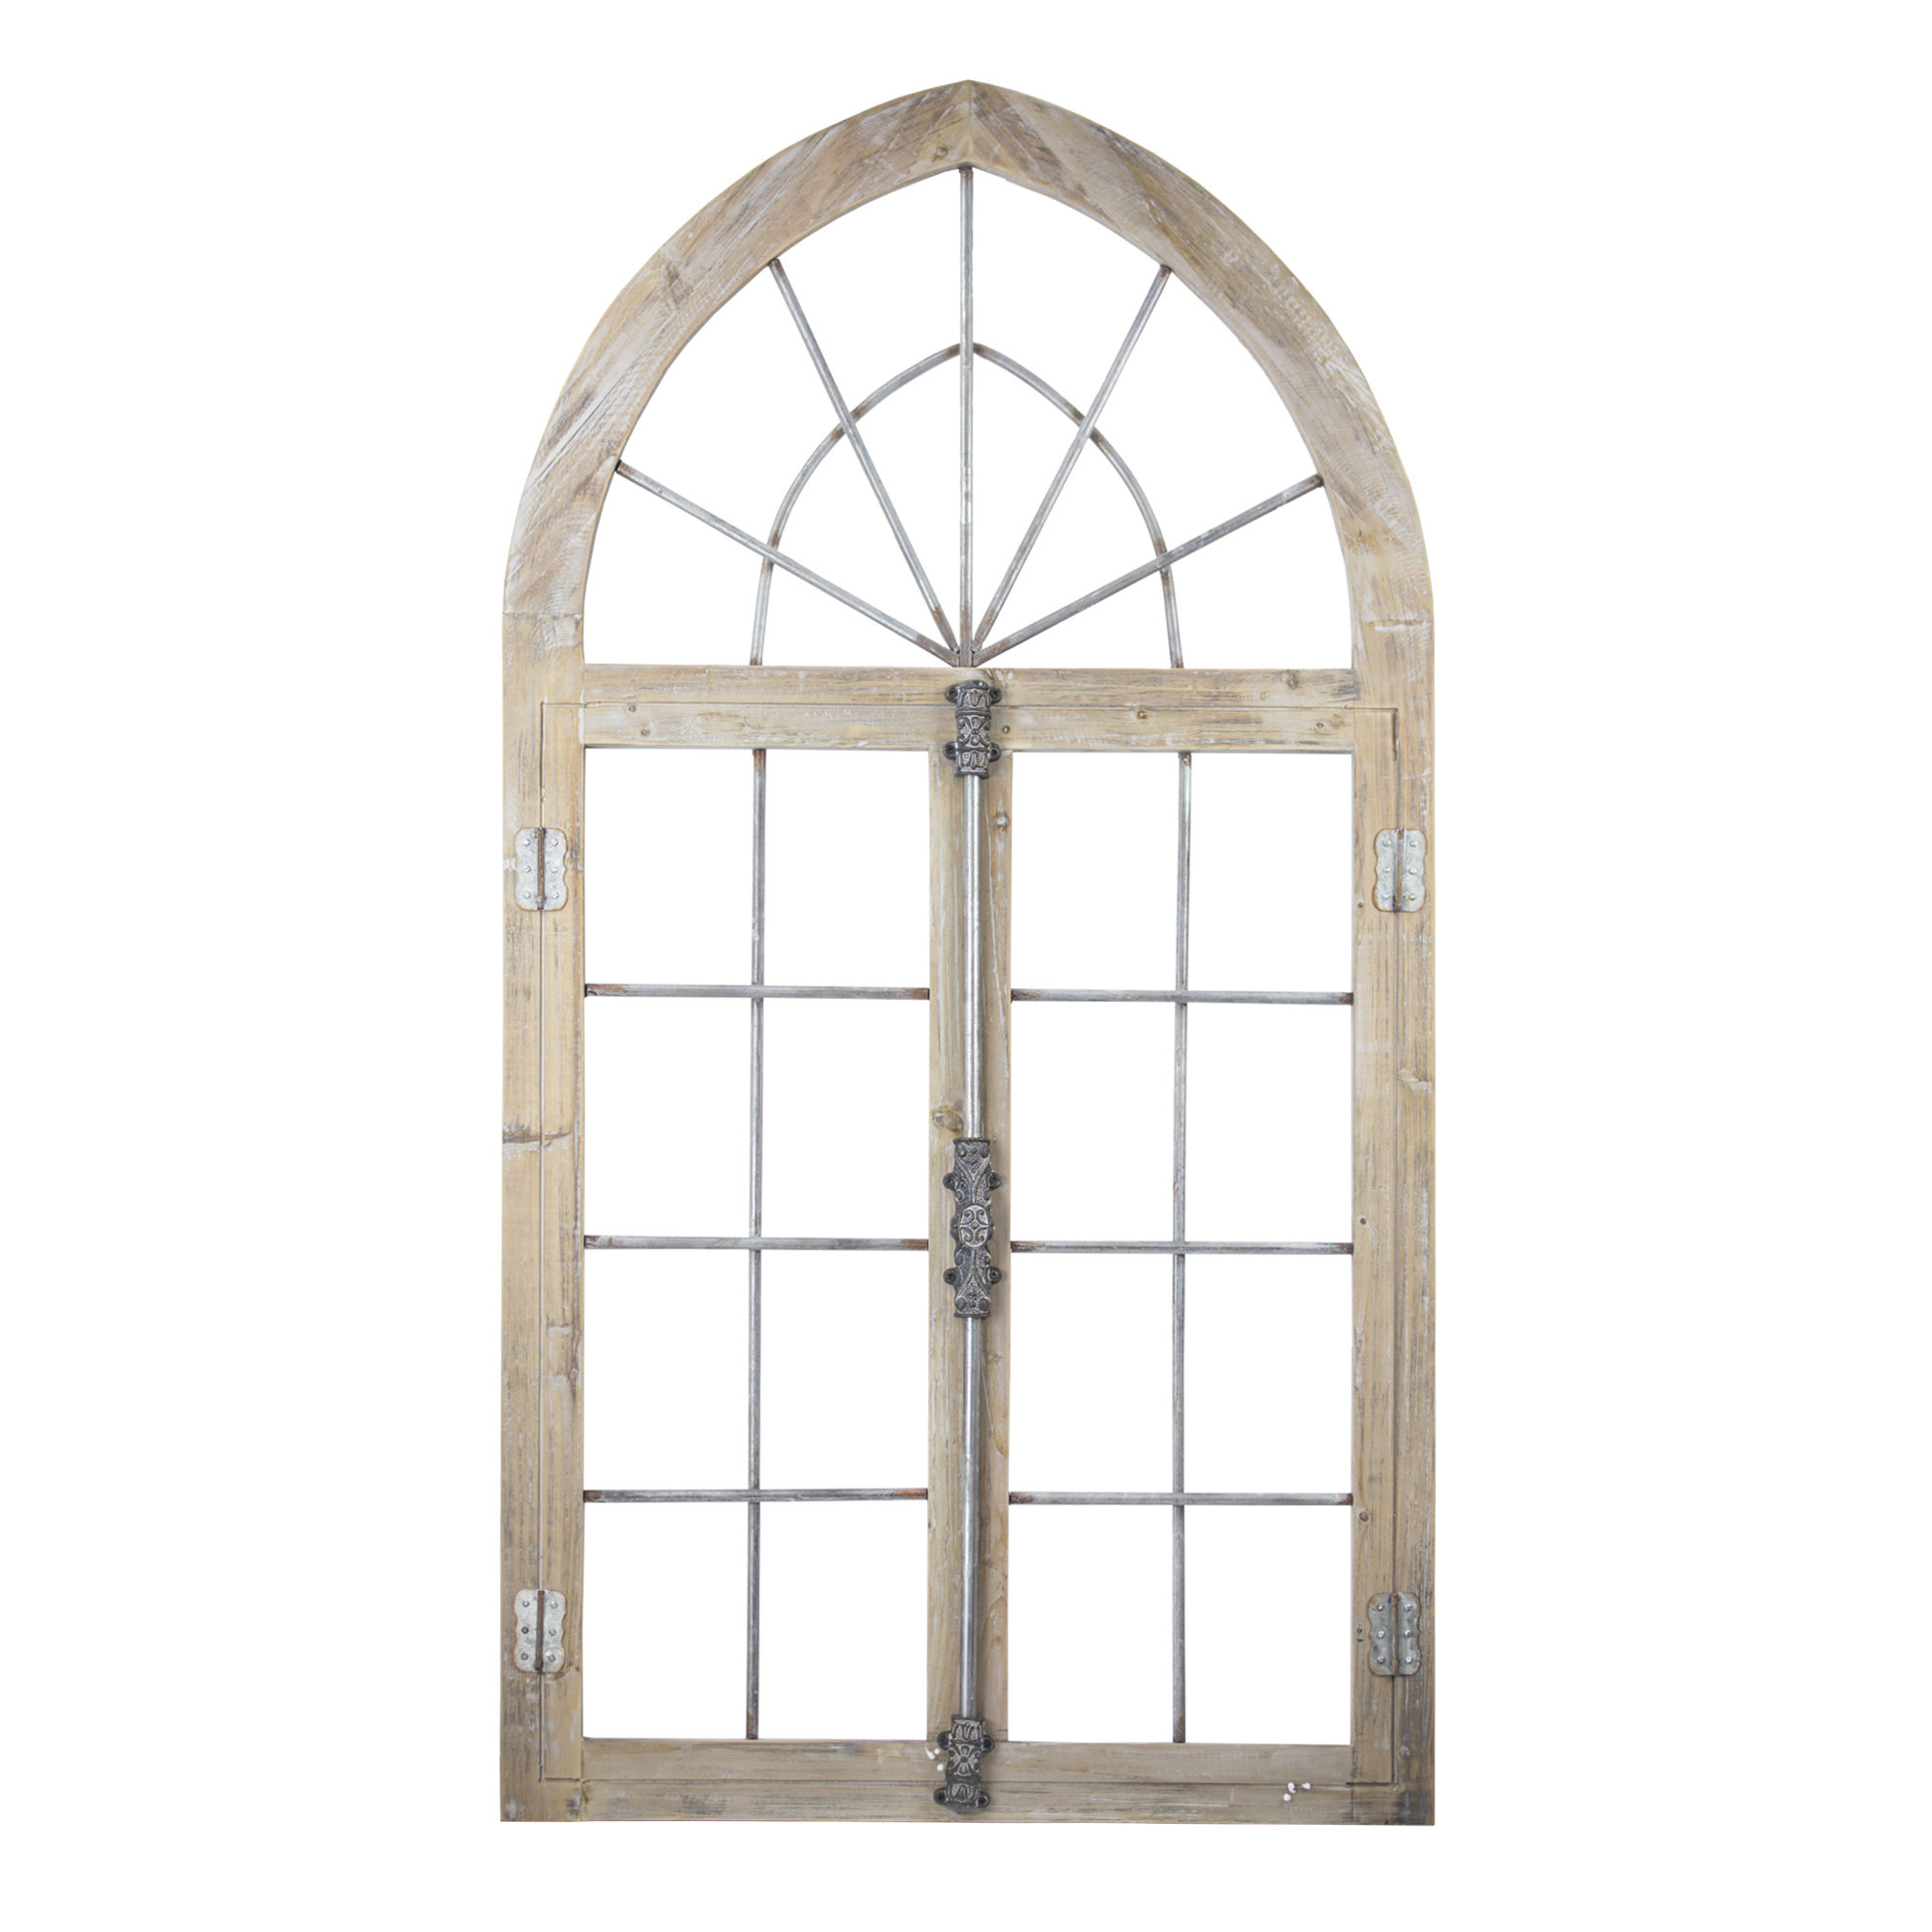 Best And Newest Arch Wall Décor By One Allium Way With Farmhouse Wood And Metal Arched Window Door Wall Decor (View 10 of 20)